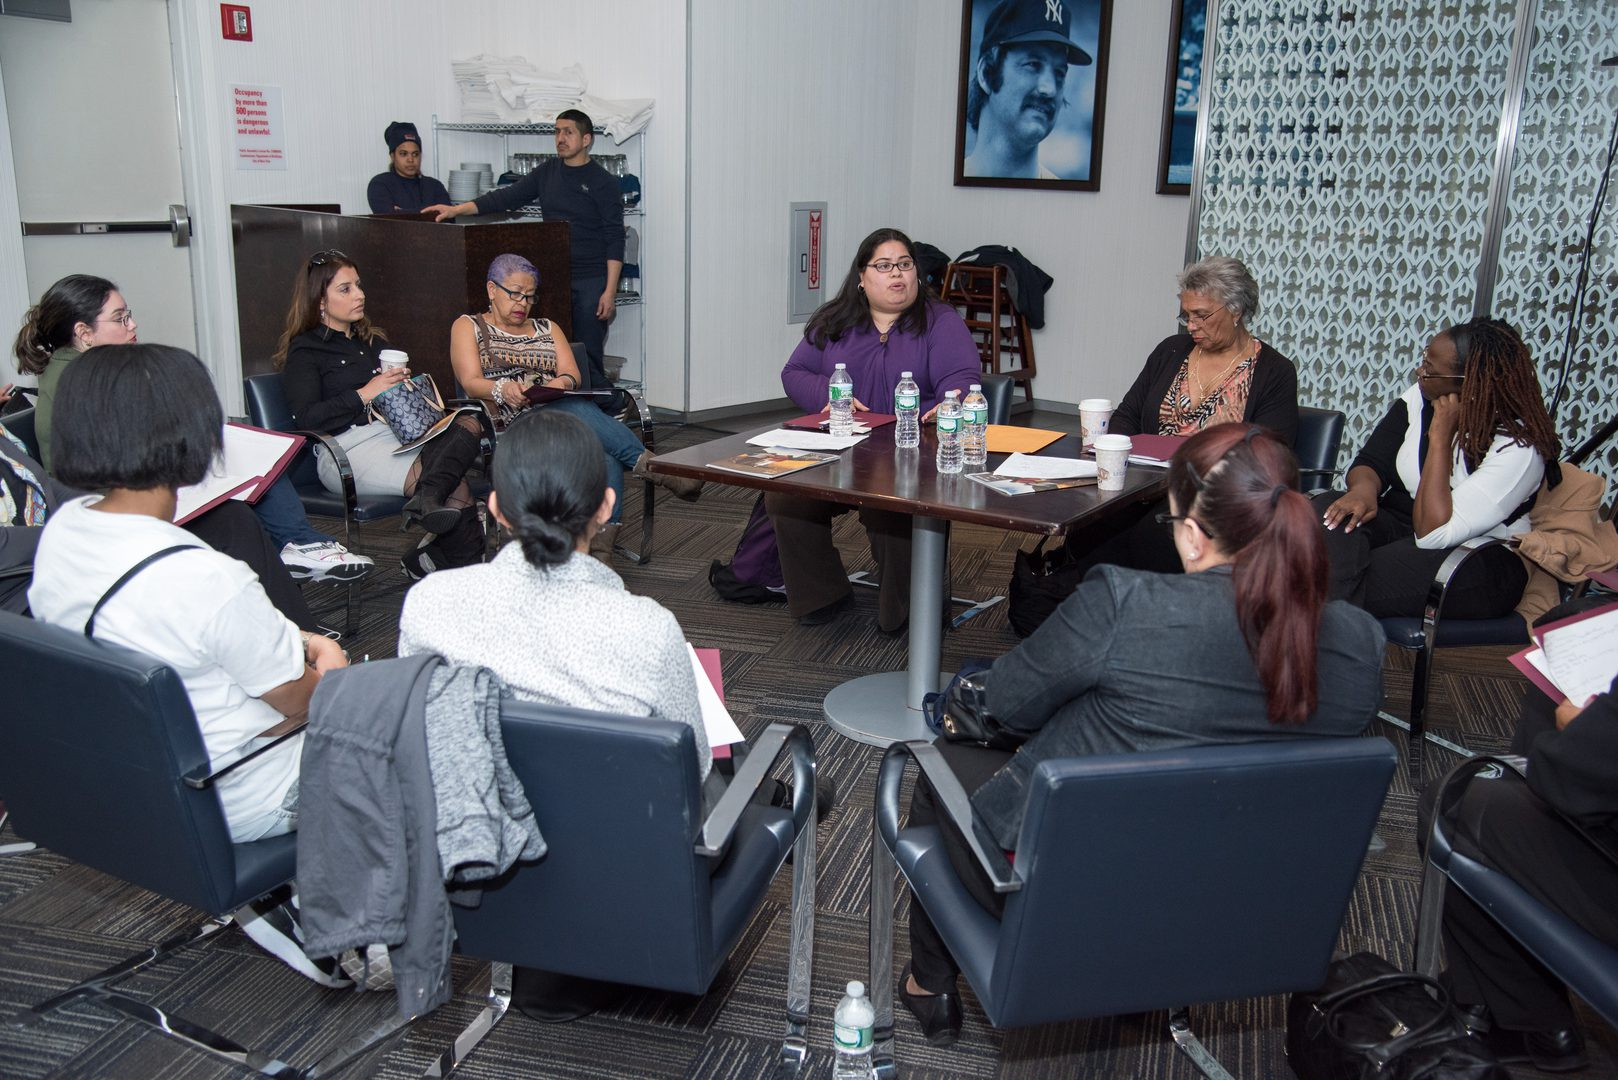 A group of women in discussion